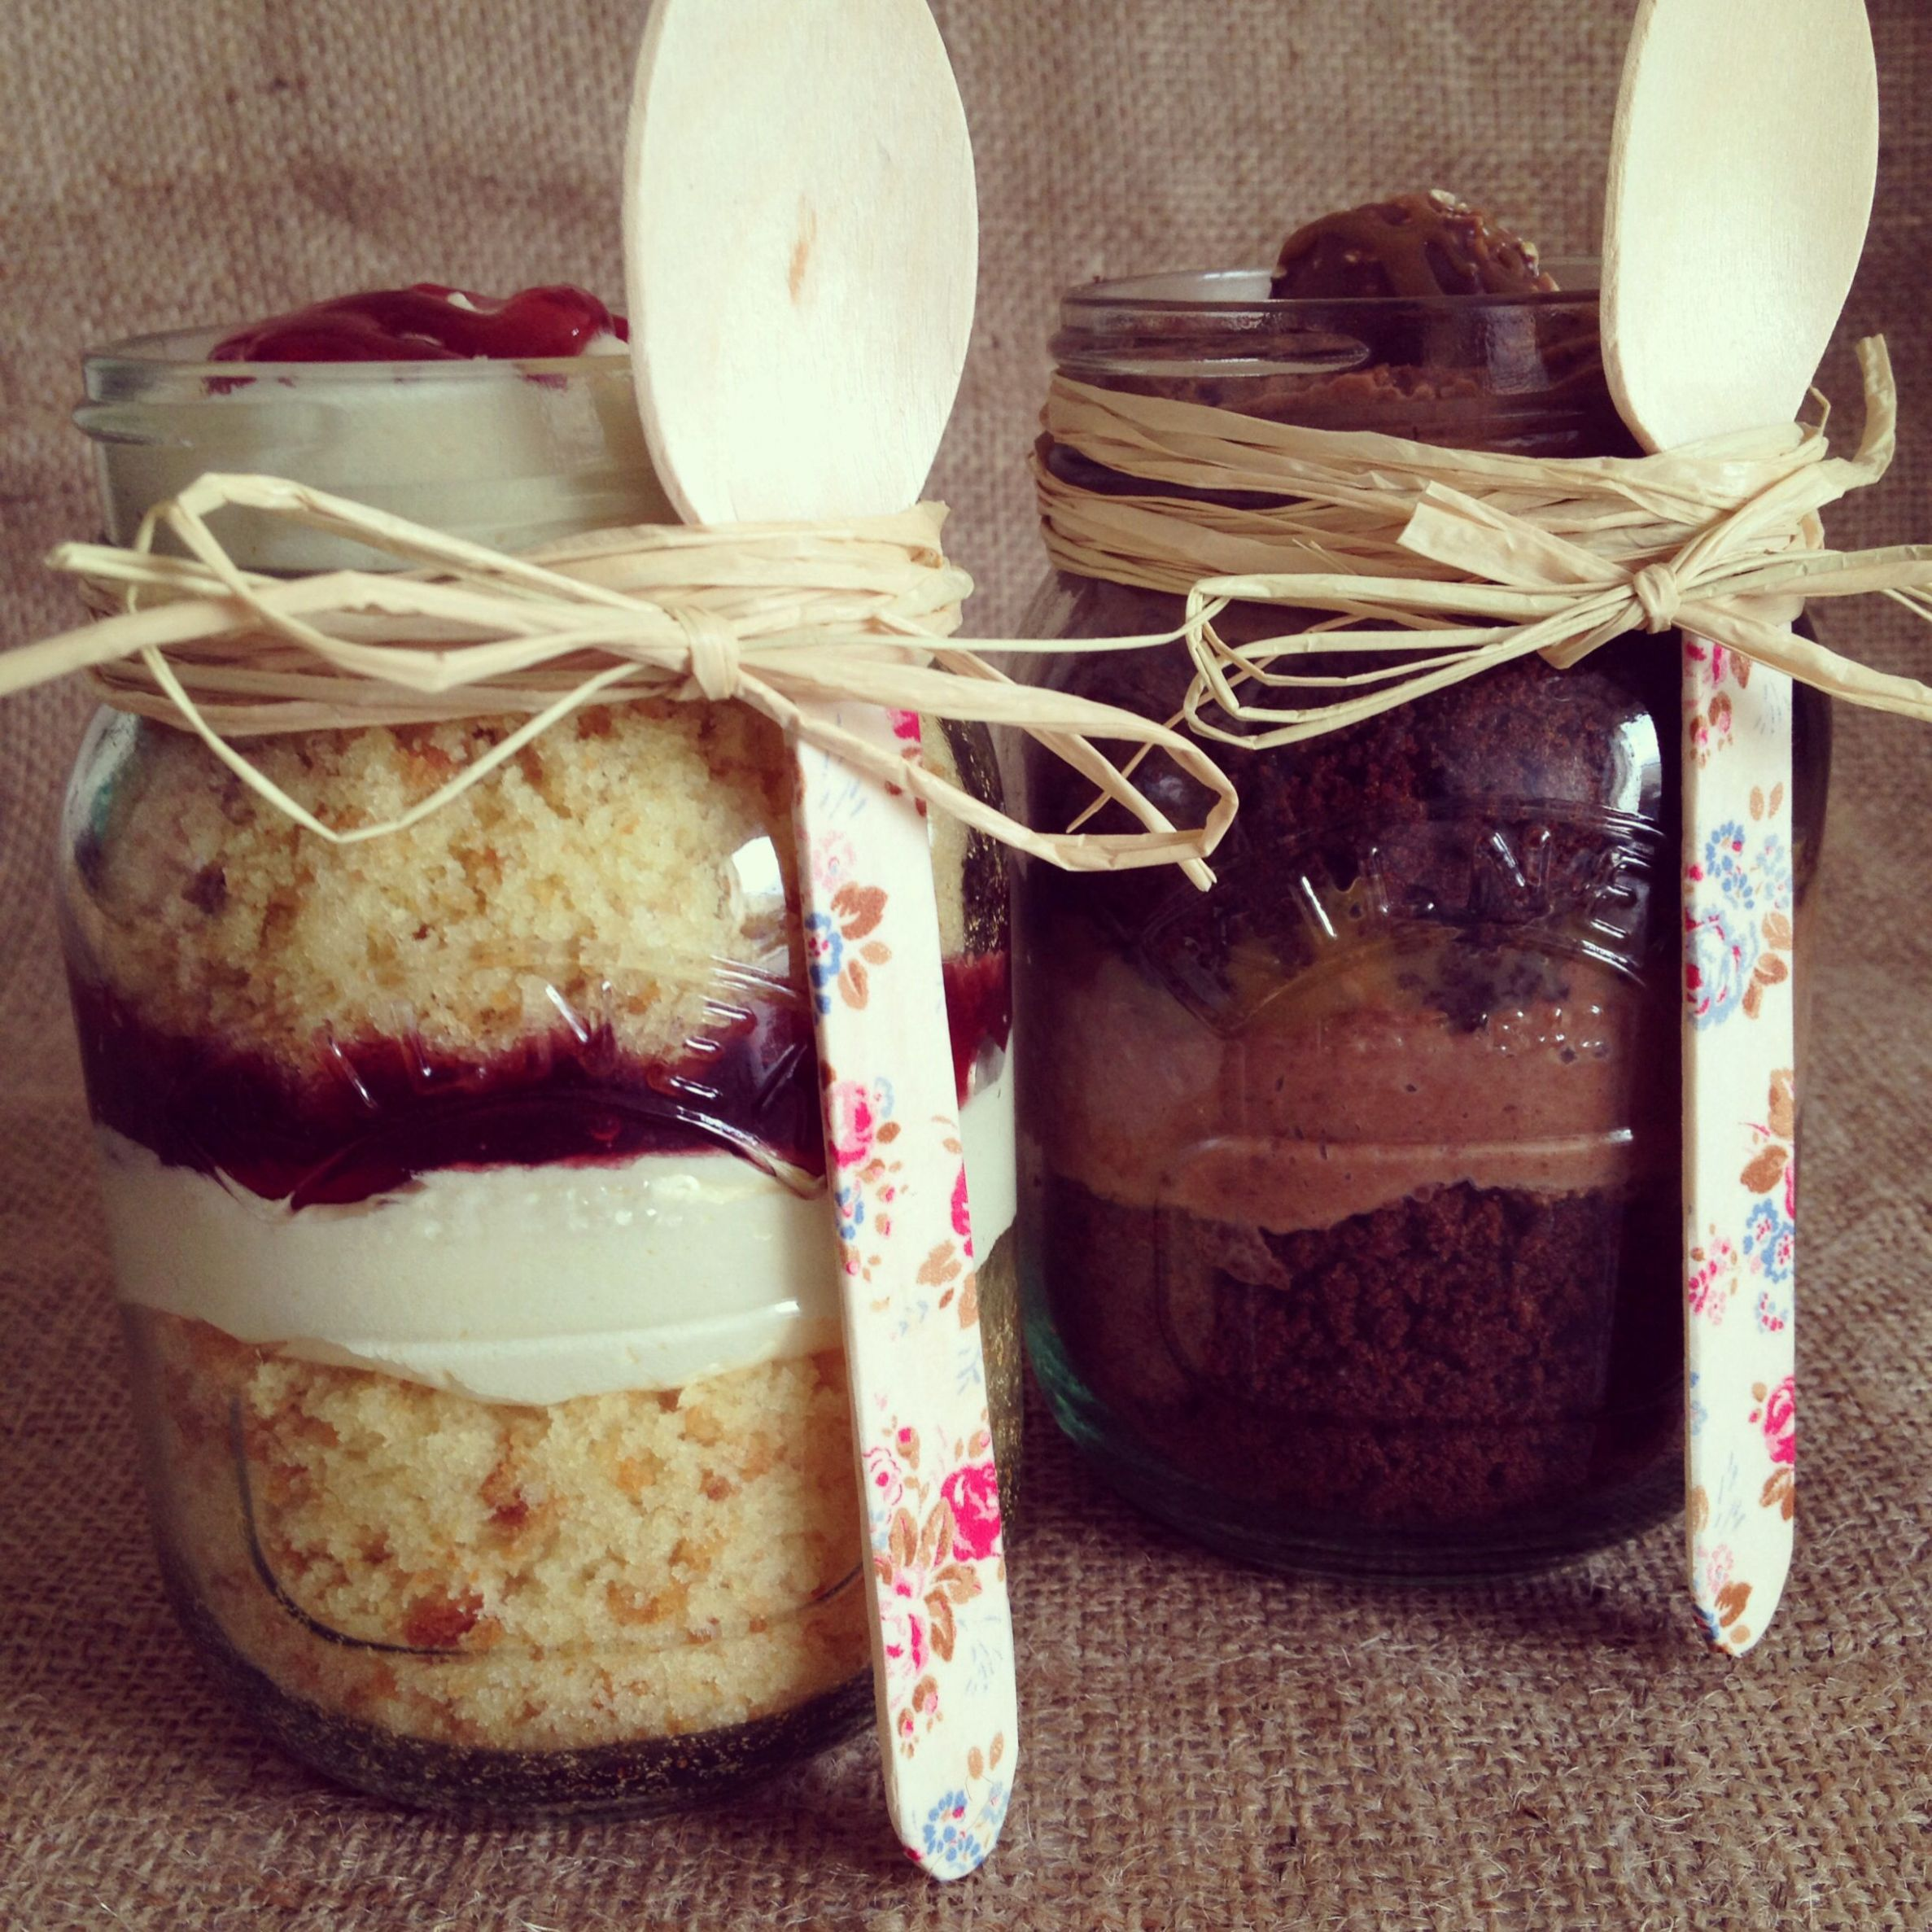 Top 9 Kilner Jar Uses | Cake stall, Baking - Recipes For Cake Jars